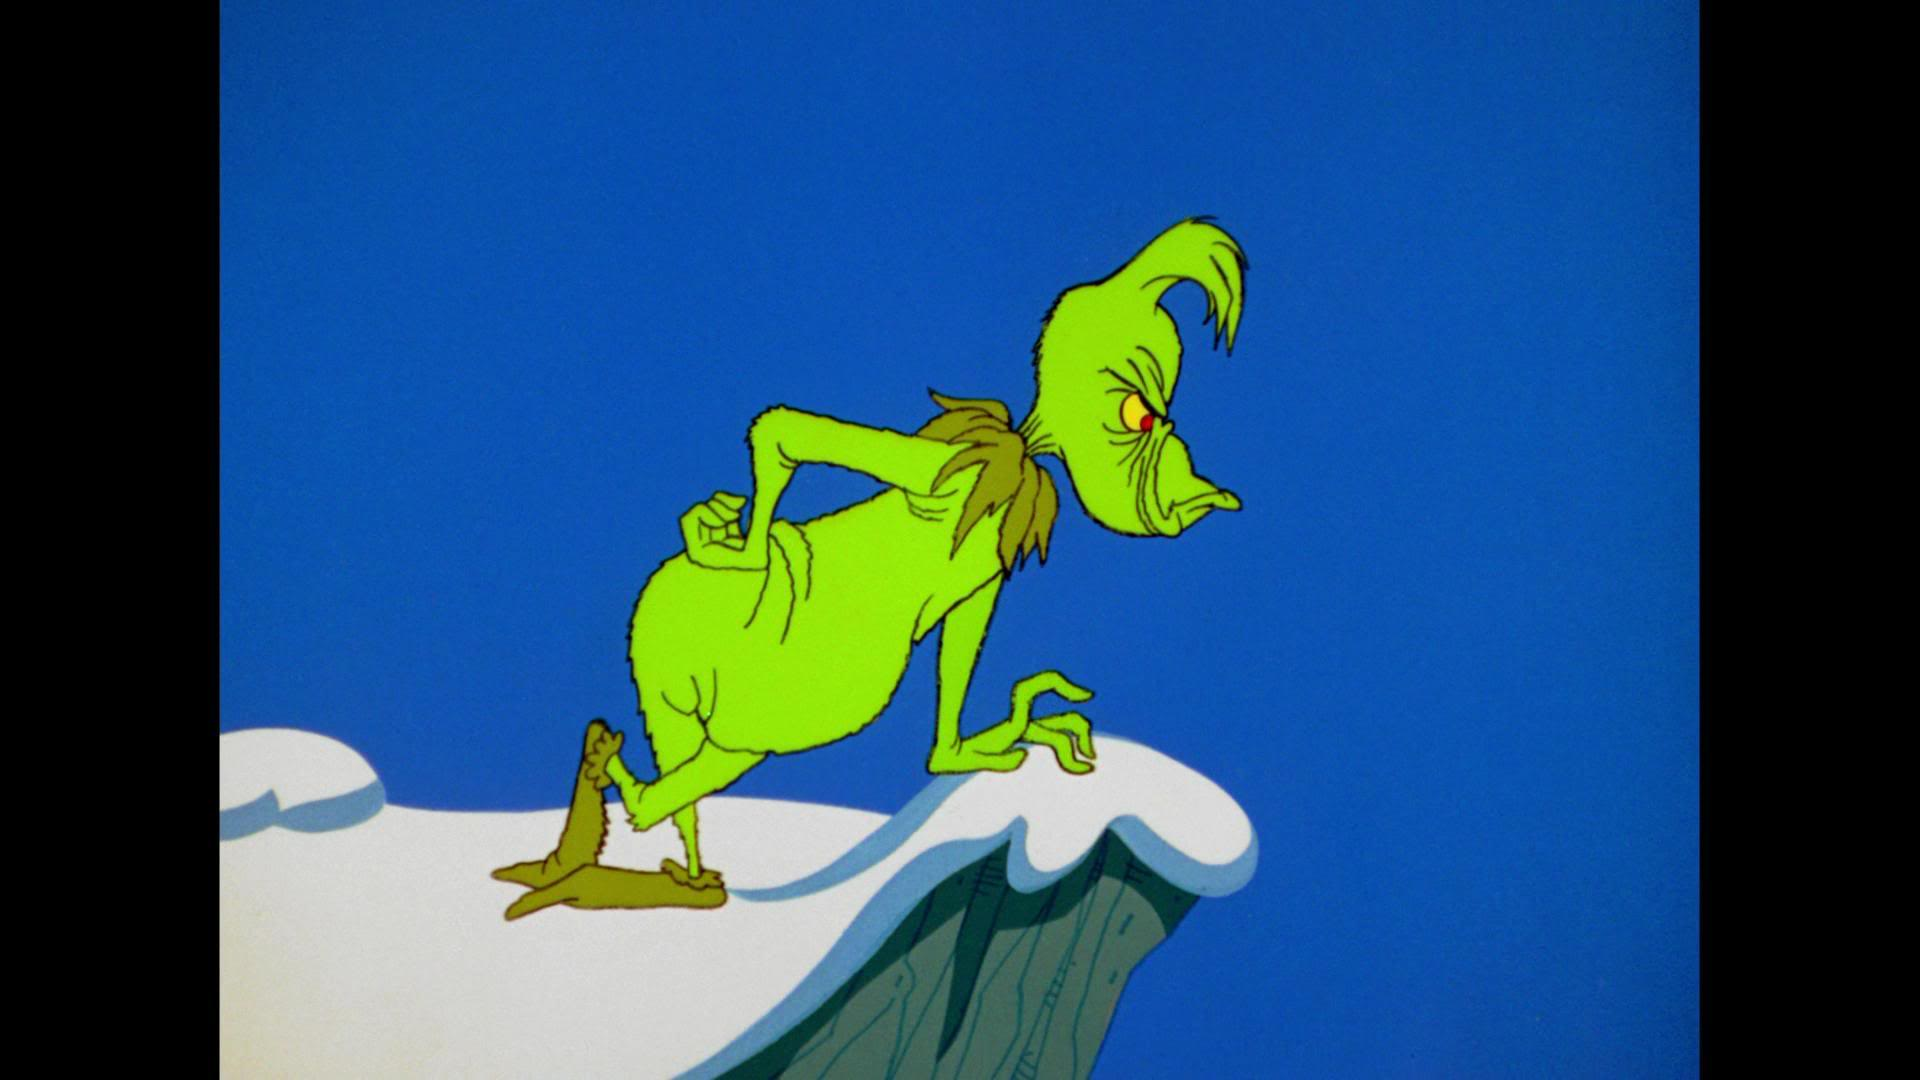 how the grinch stole christmas movie hd wallpapers 1920x1080 - How The Grinch Stole Christmas Stream